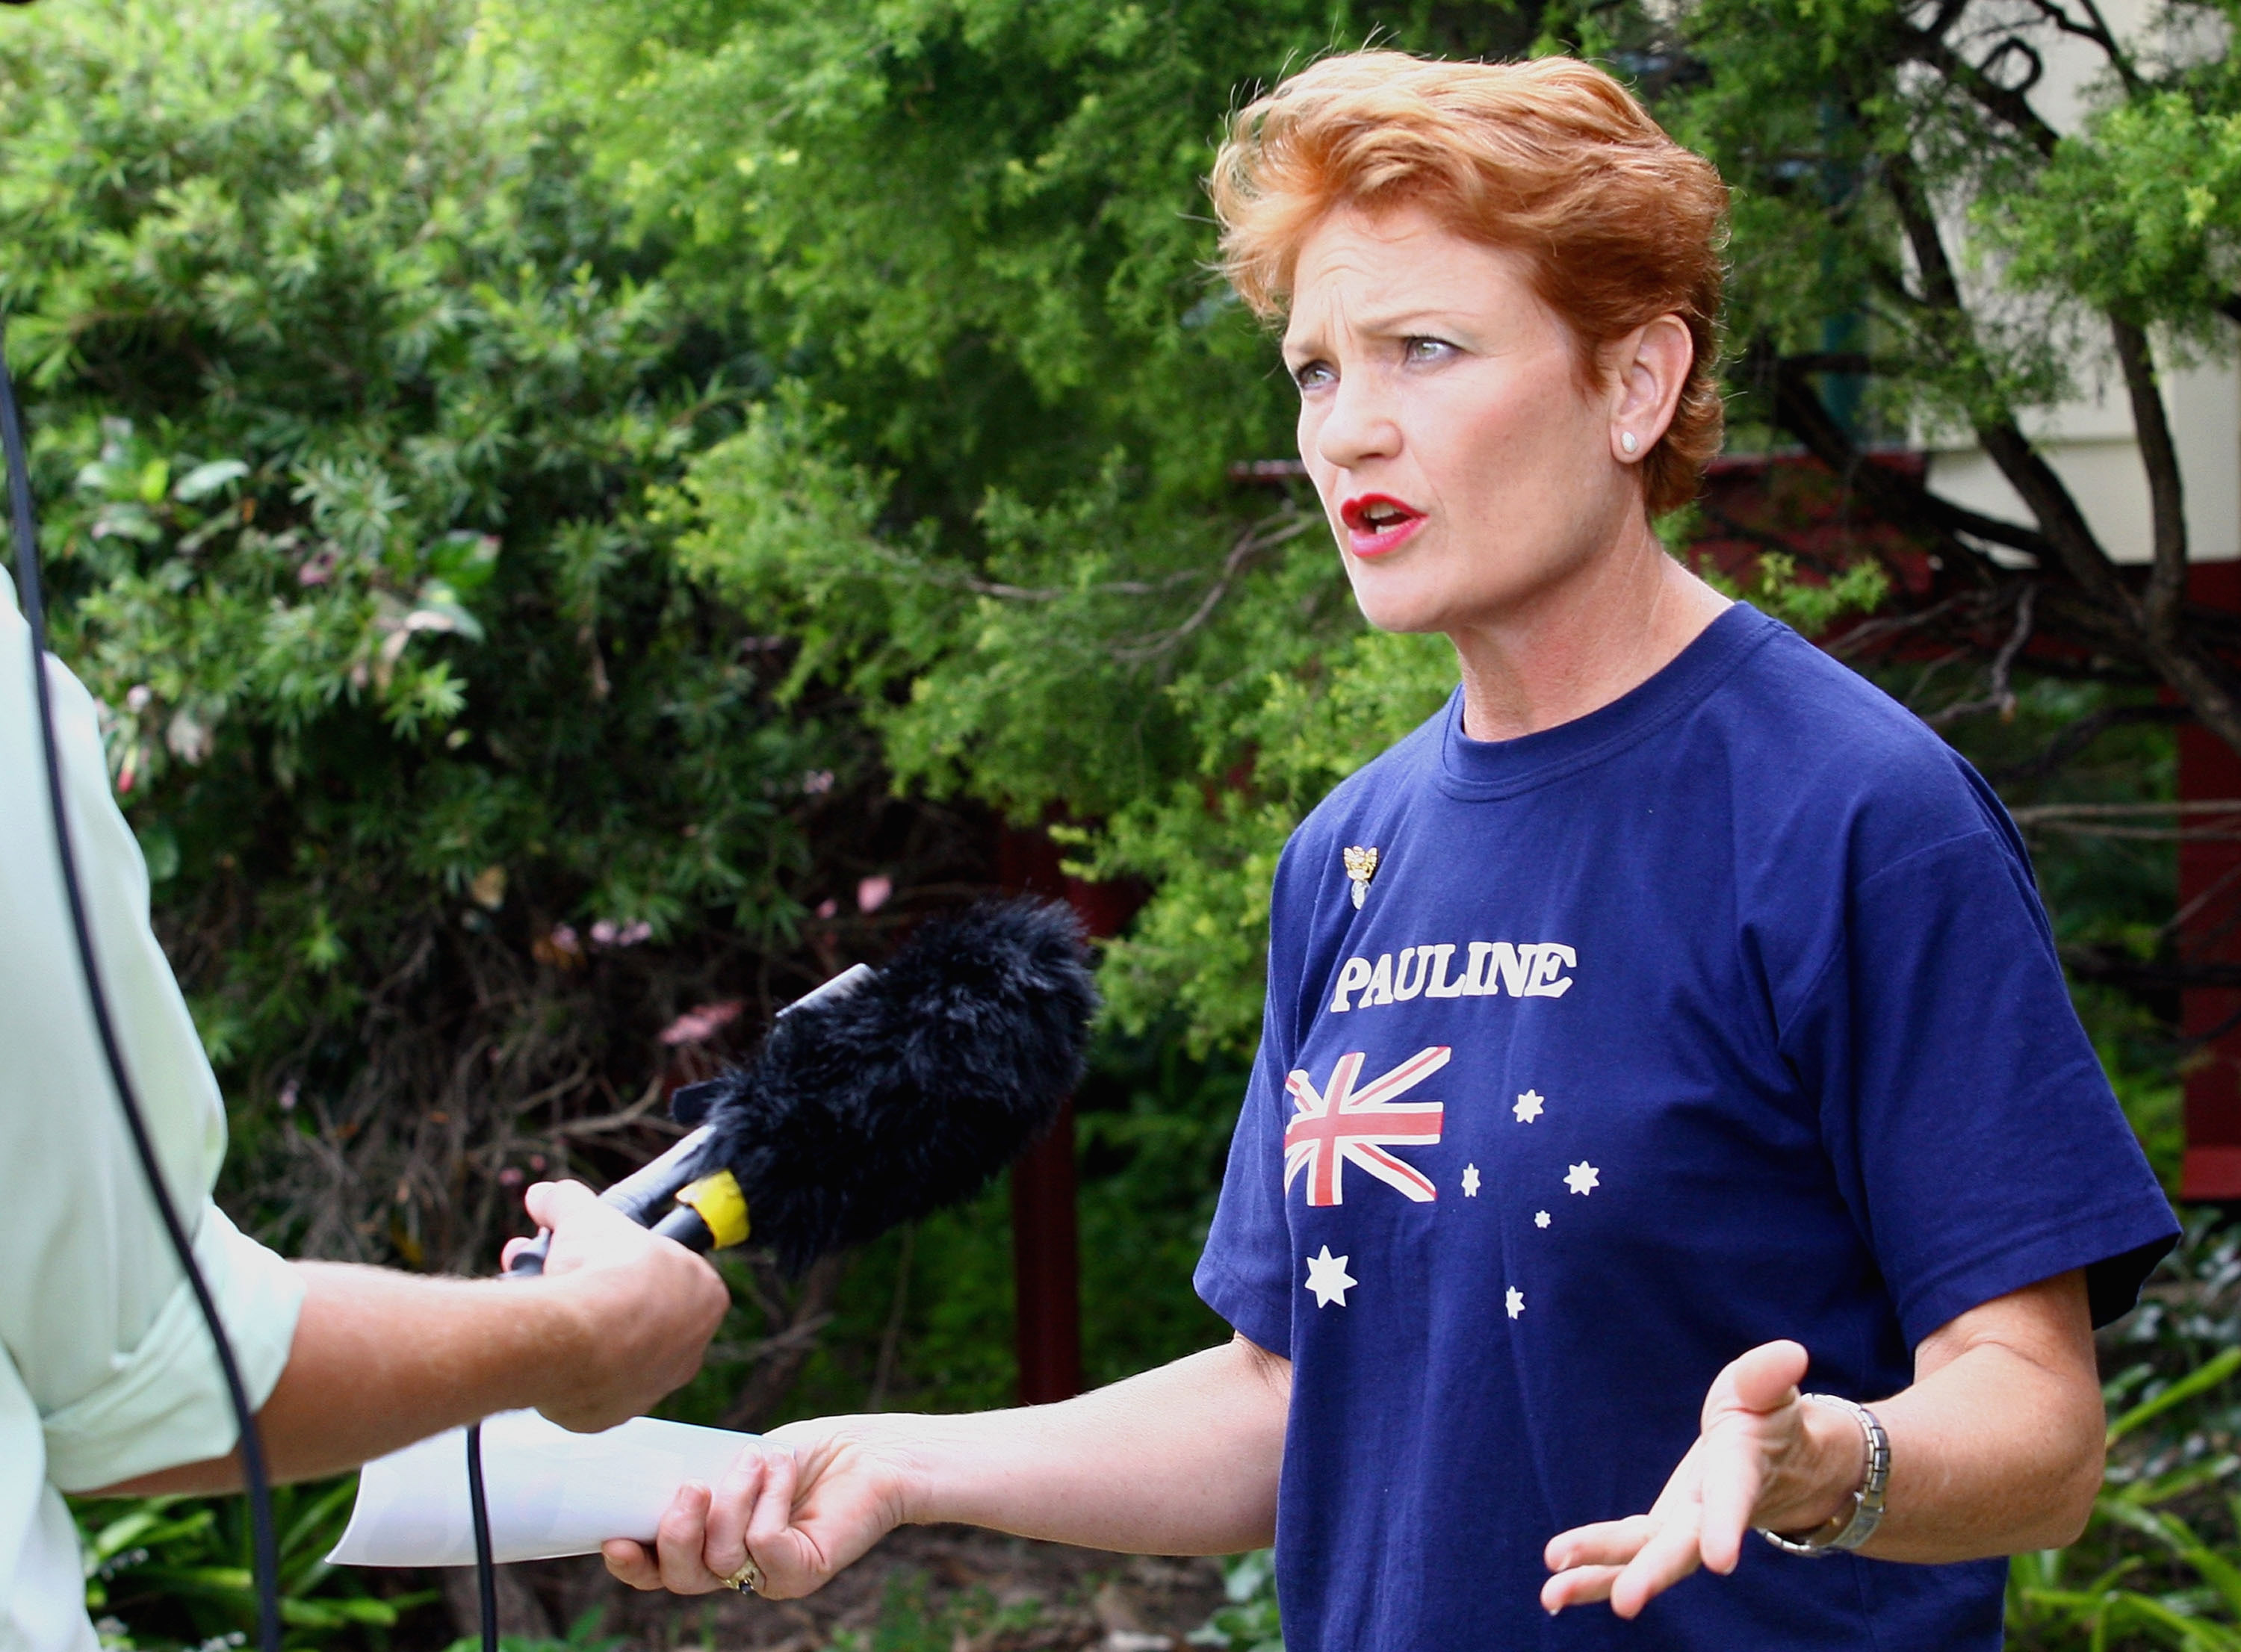 Pauline Hanson: Supplier of headlines, or slave to them?